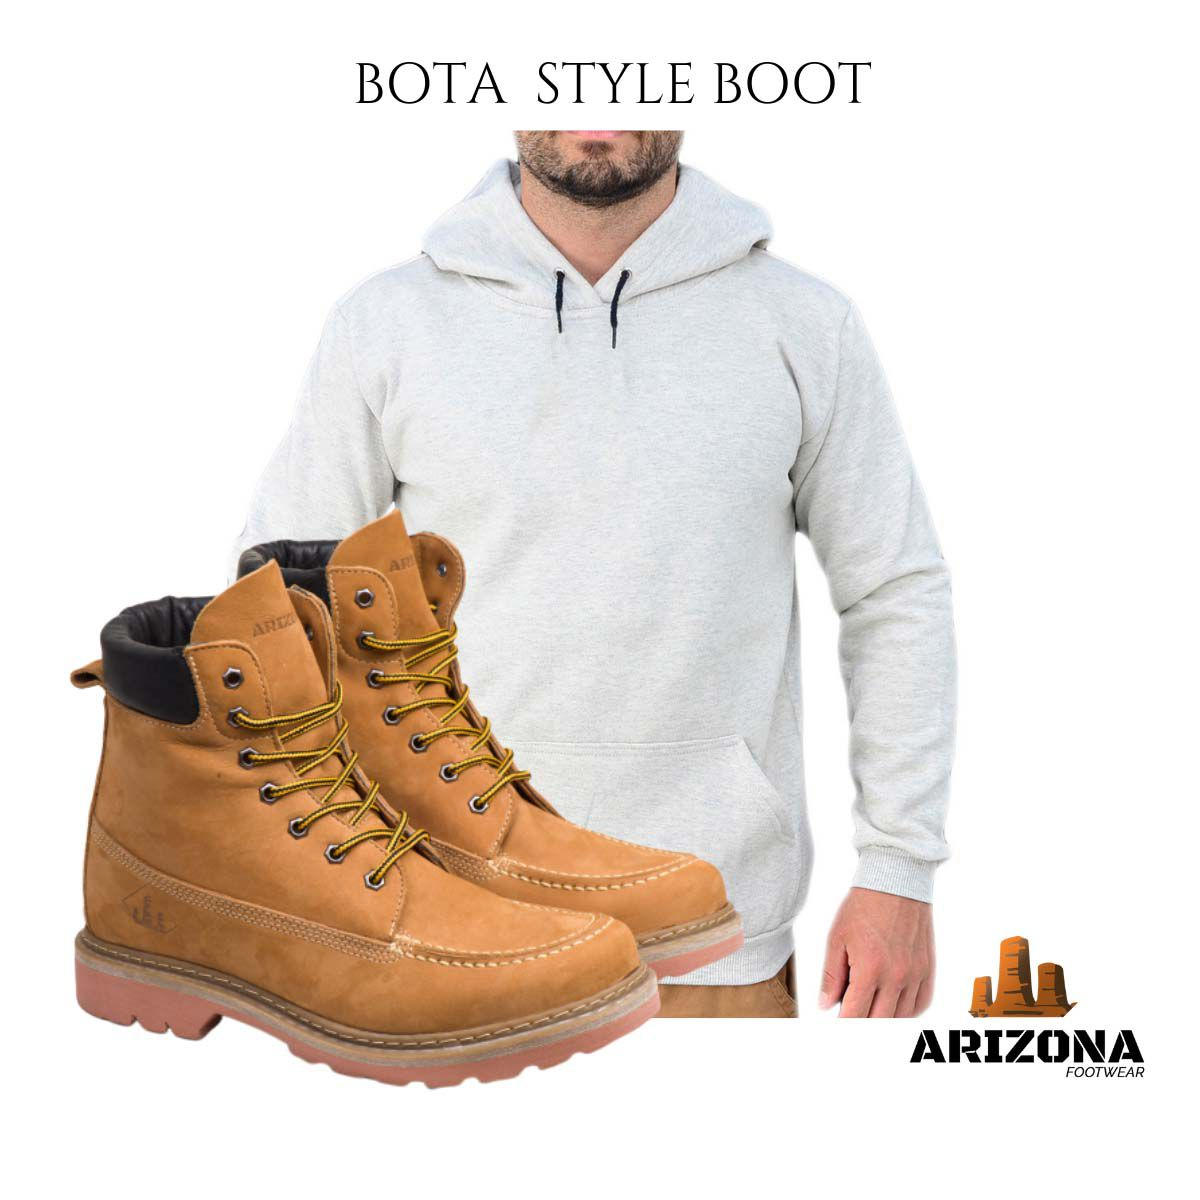 Bota Coturno Adventure Arizona Canyon Boot Moleton Liso Cinza